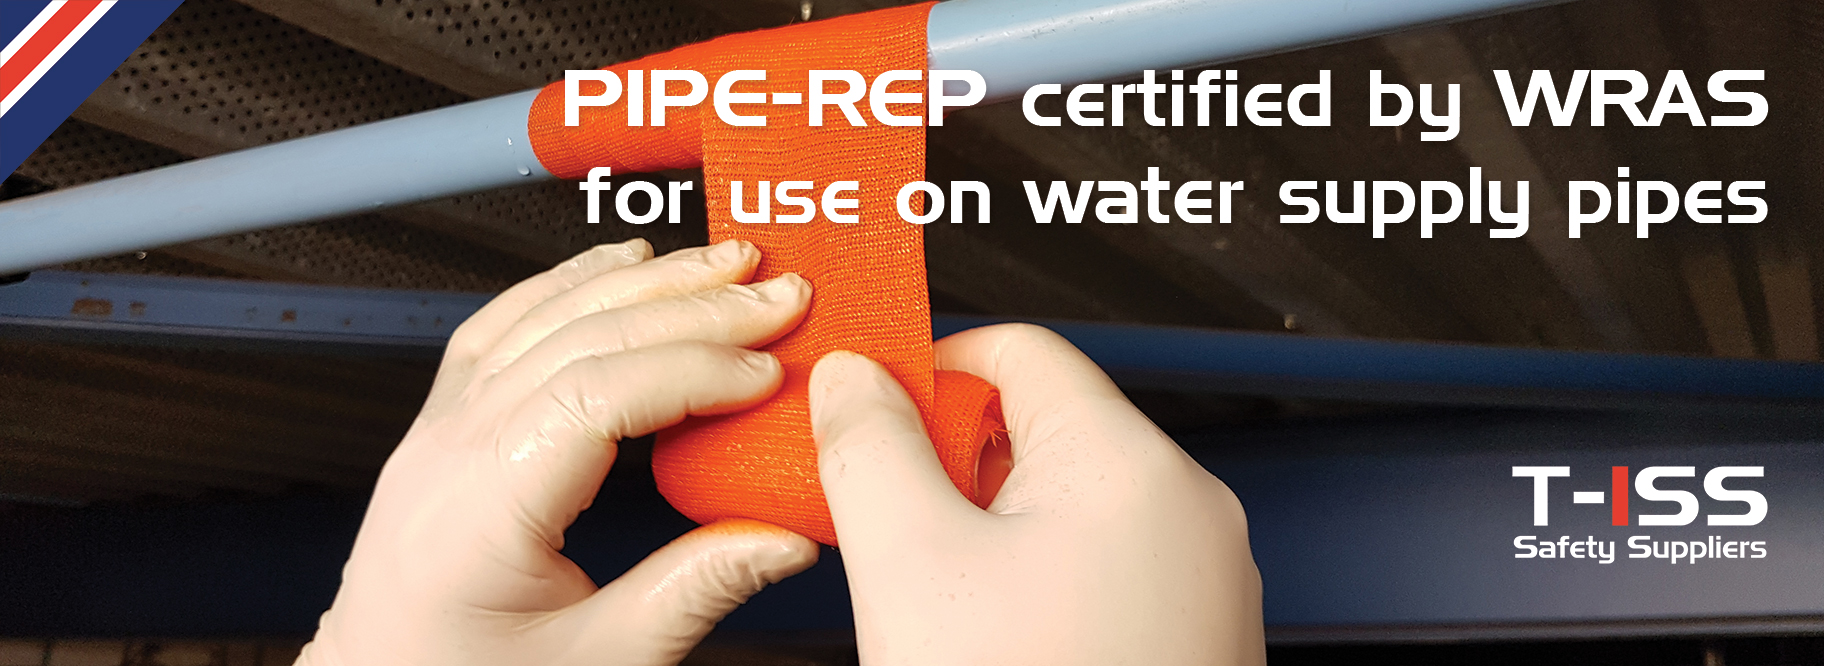 Pipe-Rep certified by WRAS for water pipe repair T-ISS safety suppliers